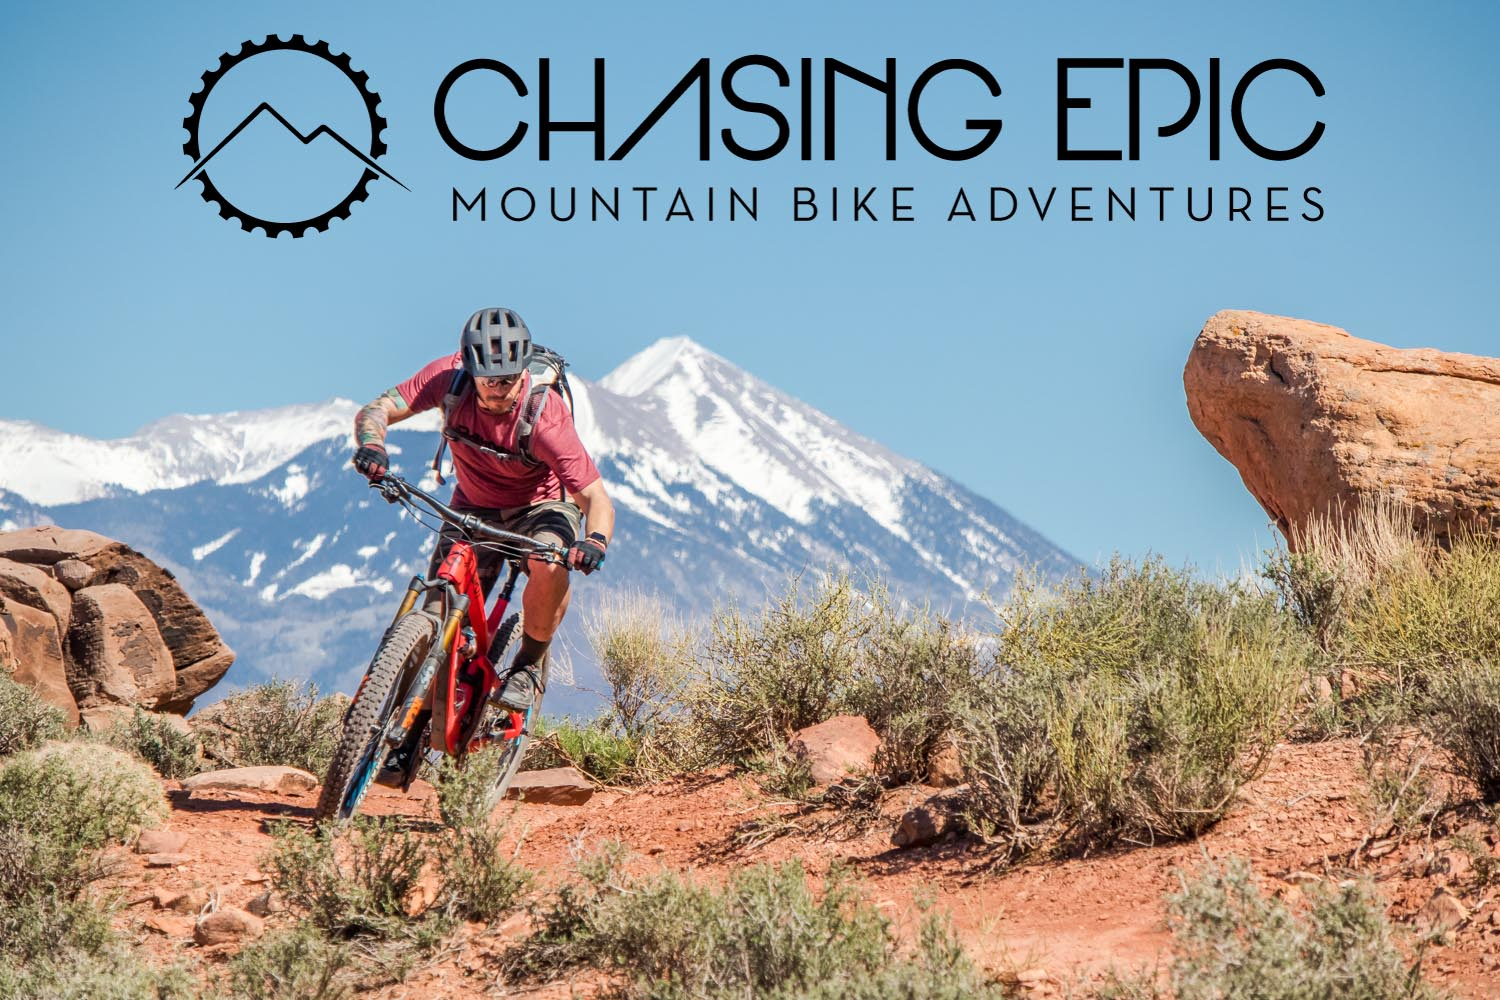 Chasing Epic - Chasing Epic Mountain Bike Adventures is putting their money where their heart is. For all trips set up through frmtb.org, they'll donate somewhere around $2,000! We'll be setting up regular trips so visit Chasing Epic and let us know what trips you're interested in.